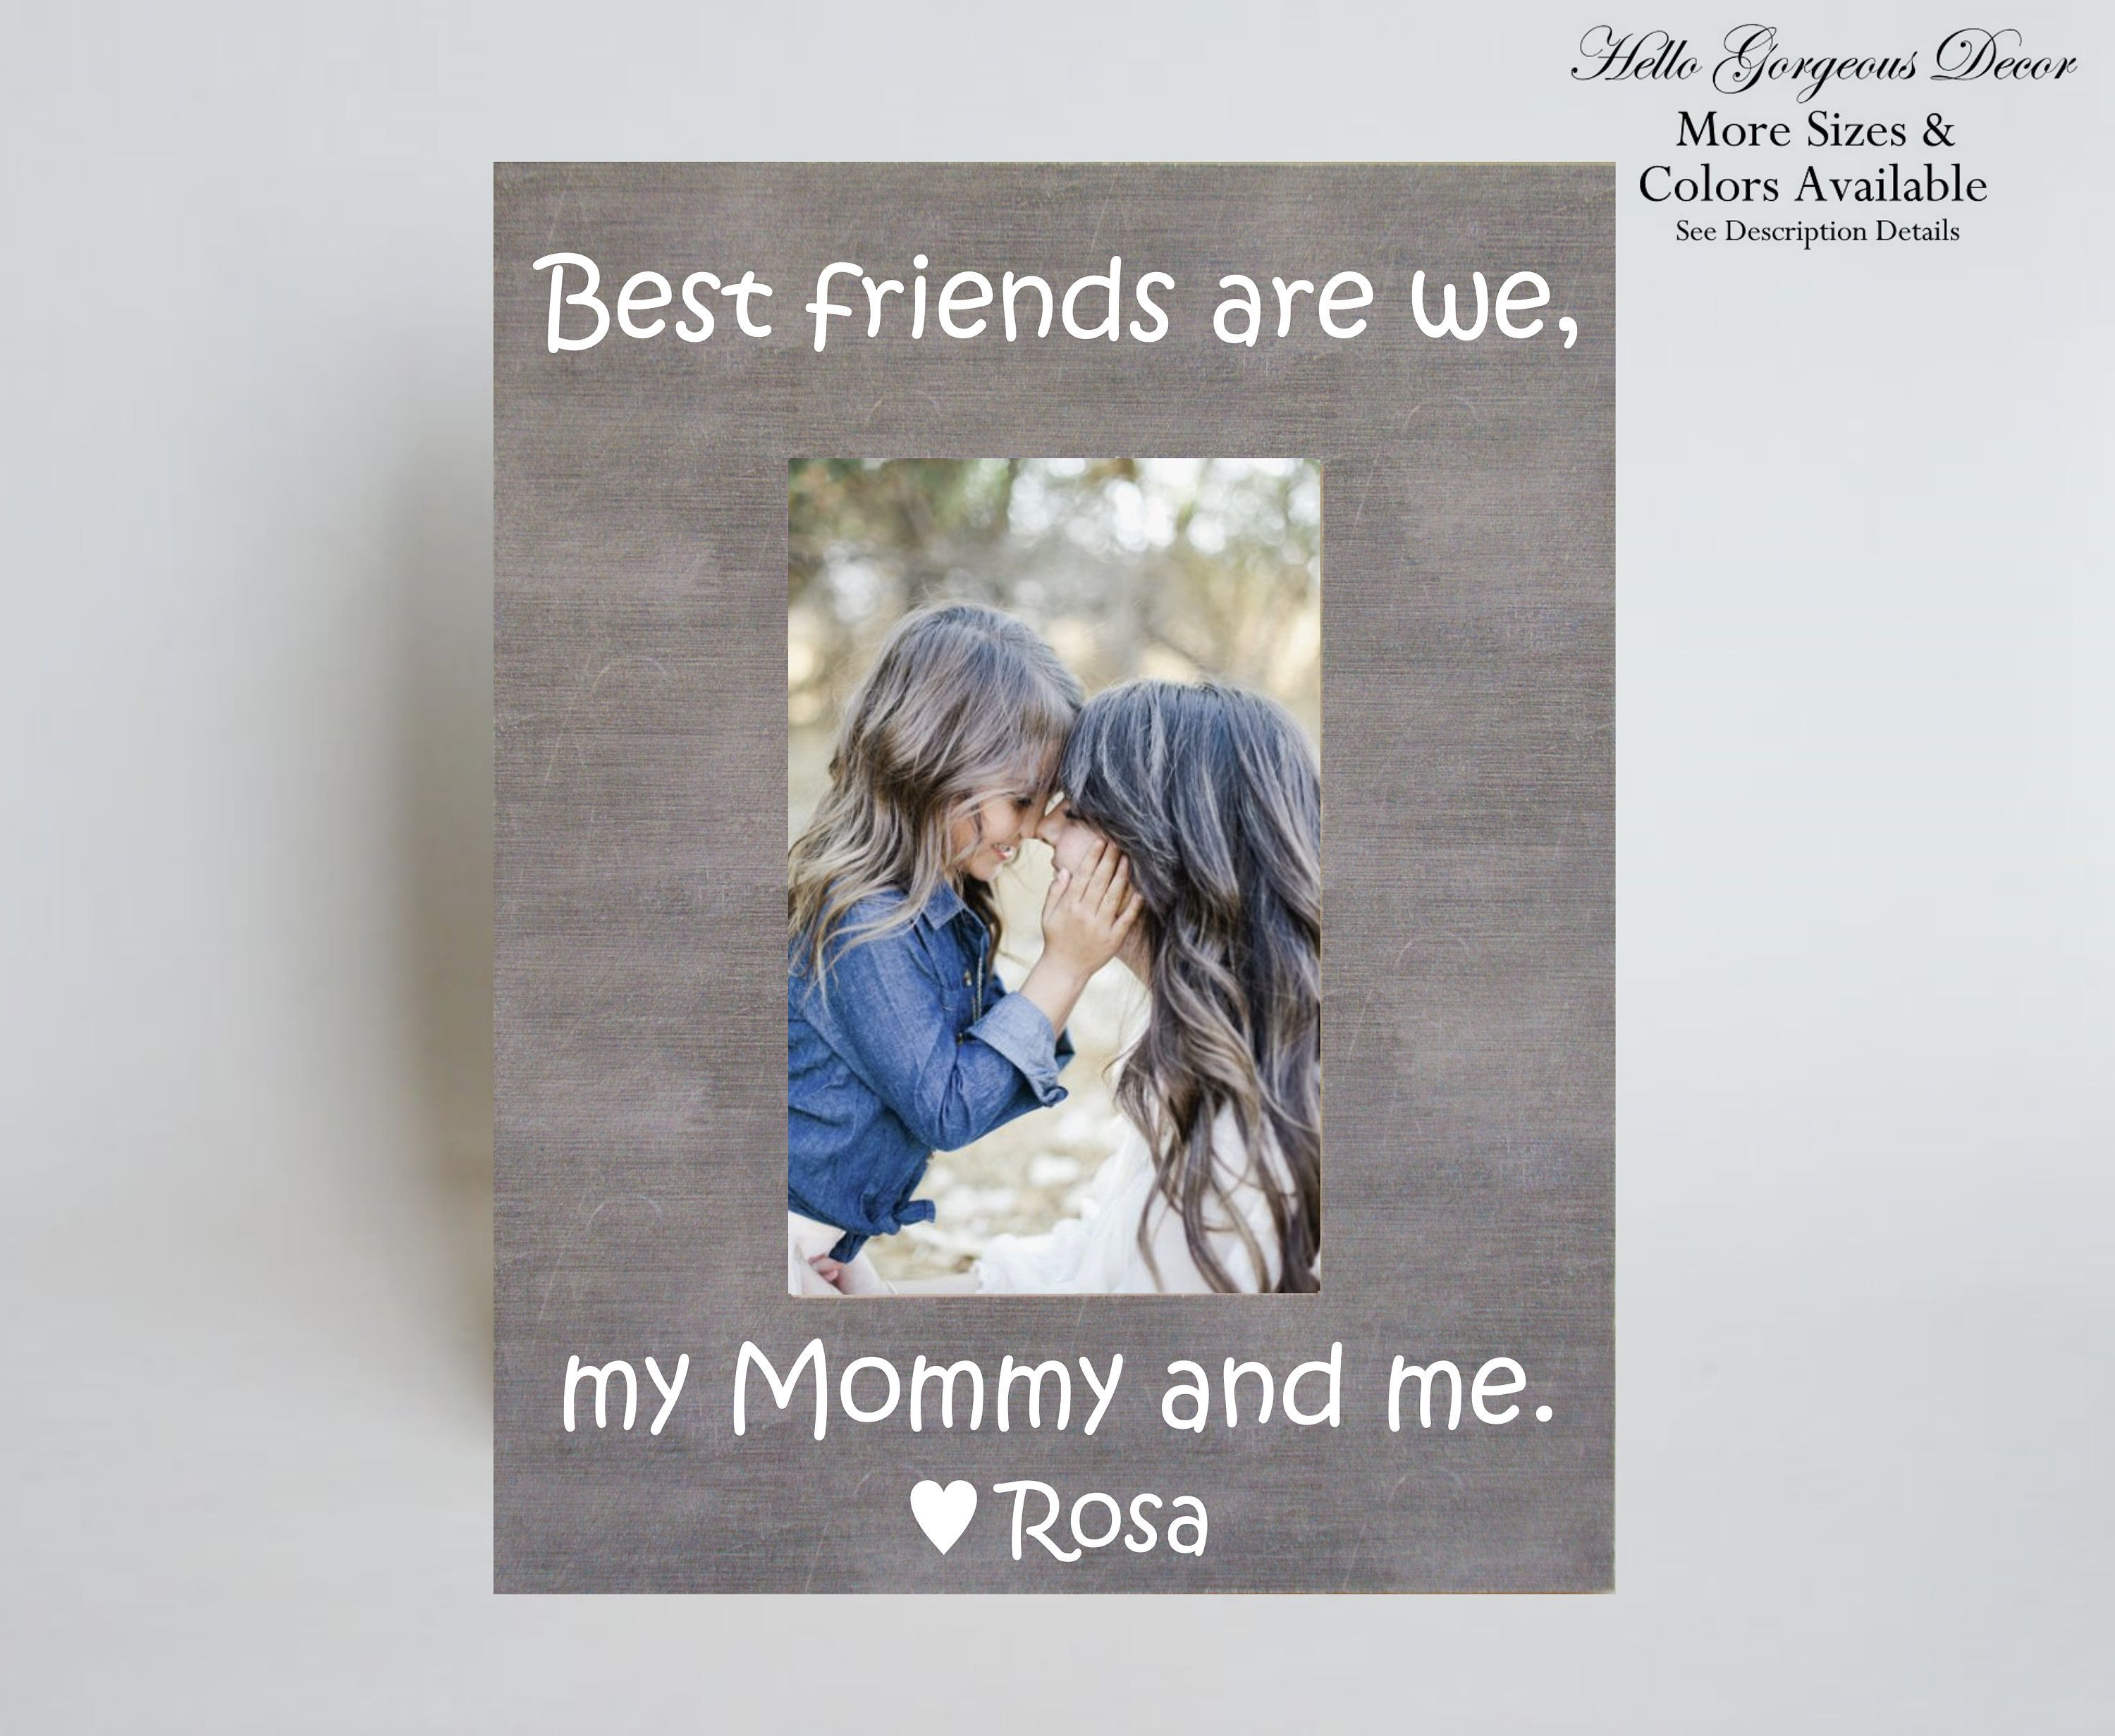 Mother S Day Gift For Mom Mommy Me Frame Personalized Gift For Mother Gift From Daughter Son Best Friends Are We My Mommy And Me Gifts For Mom Mothers Day Pictures